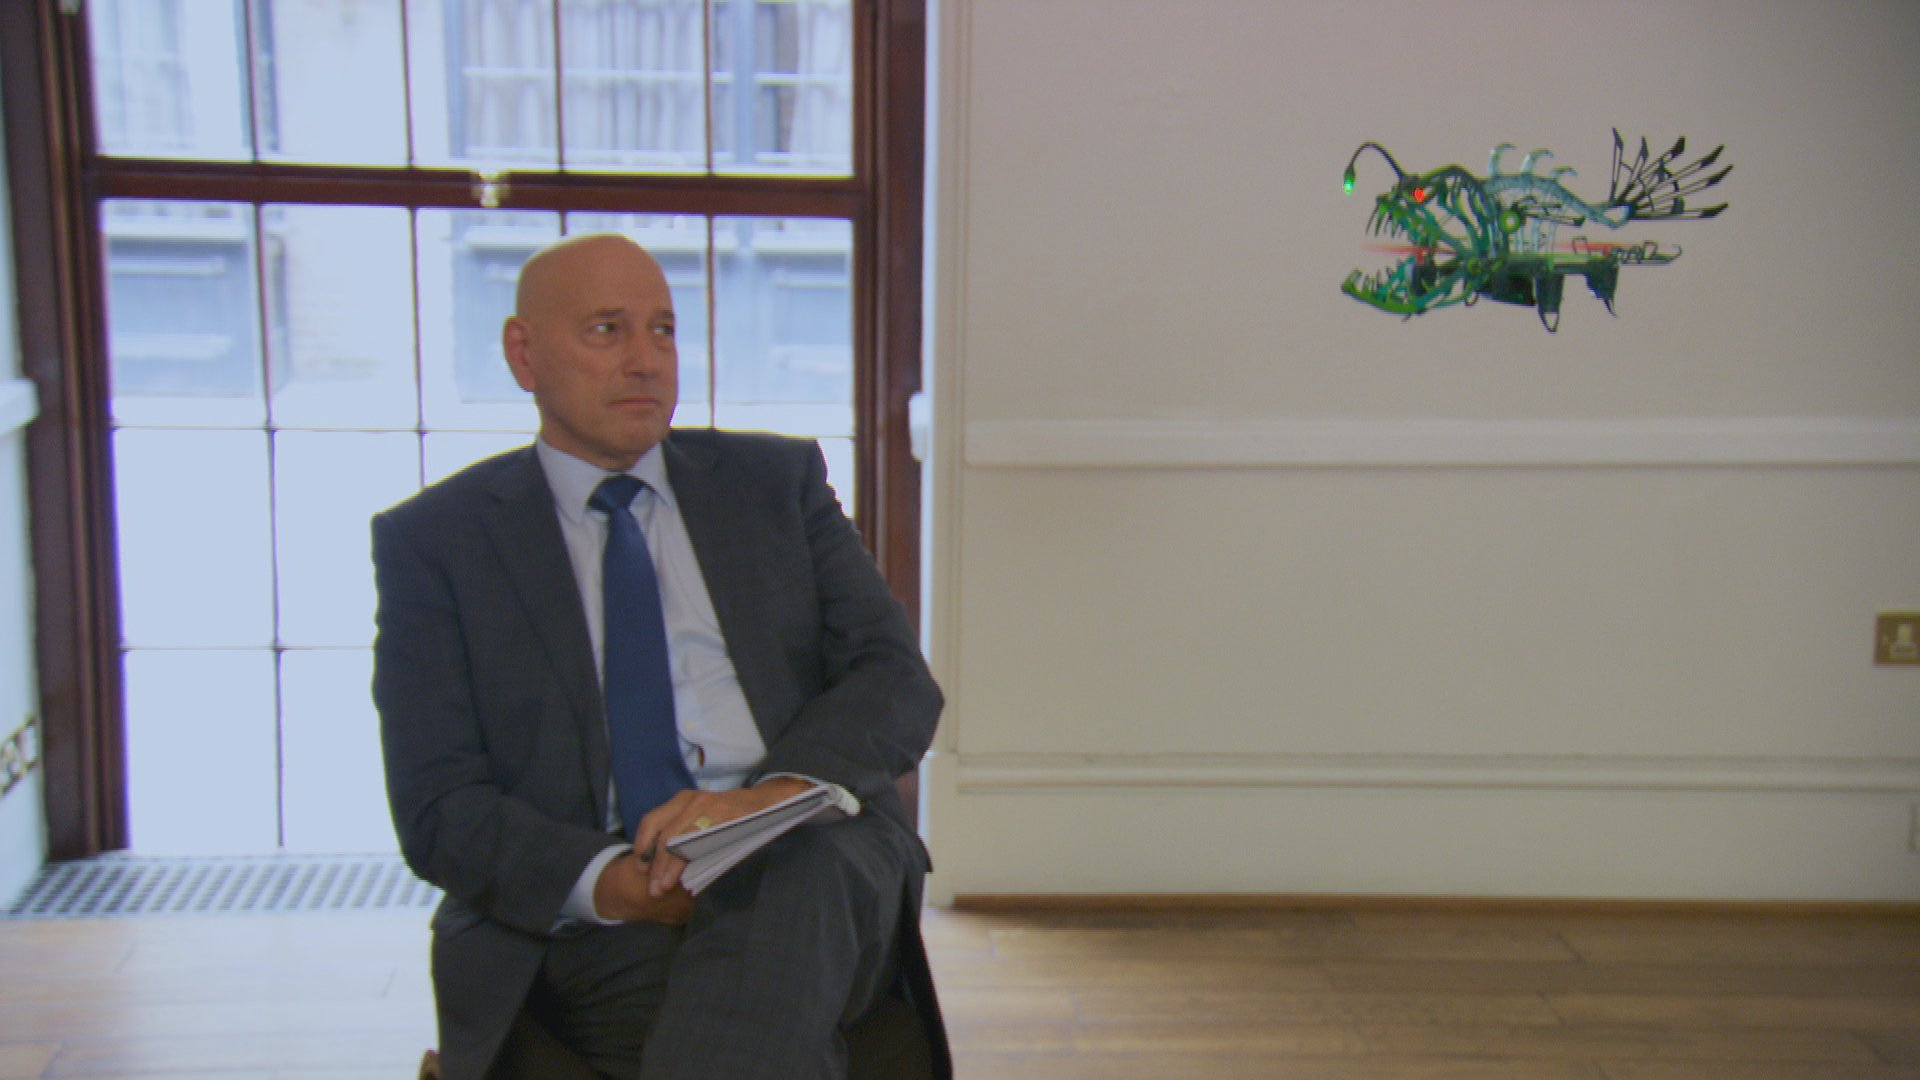 Tonight on The Apprentice at 9pm on BBC1, the episode is all about robots. This one looks exactly like Claude. https://t.co/nLamyUKZwu